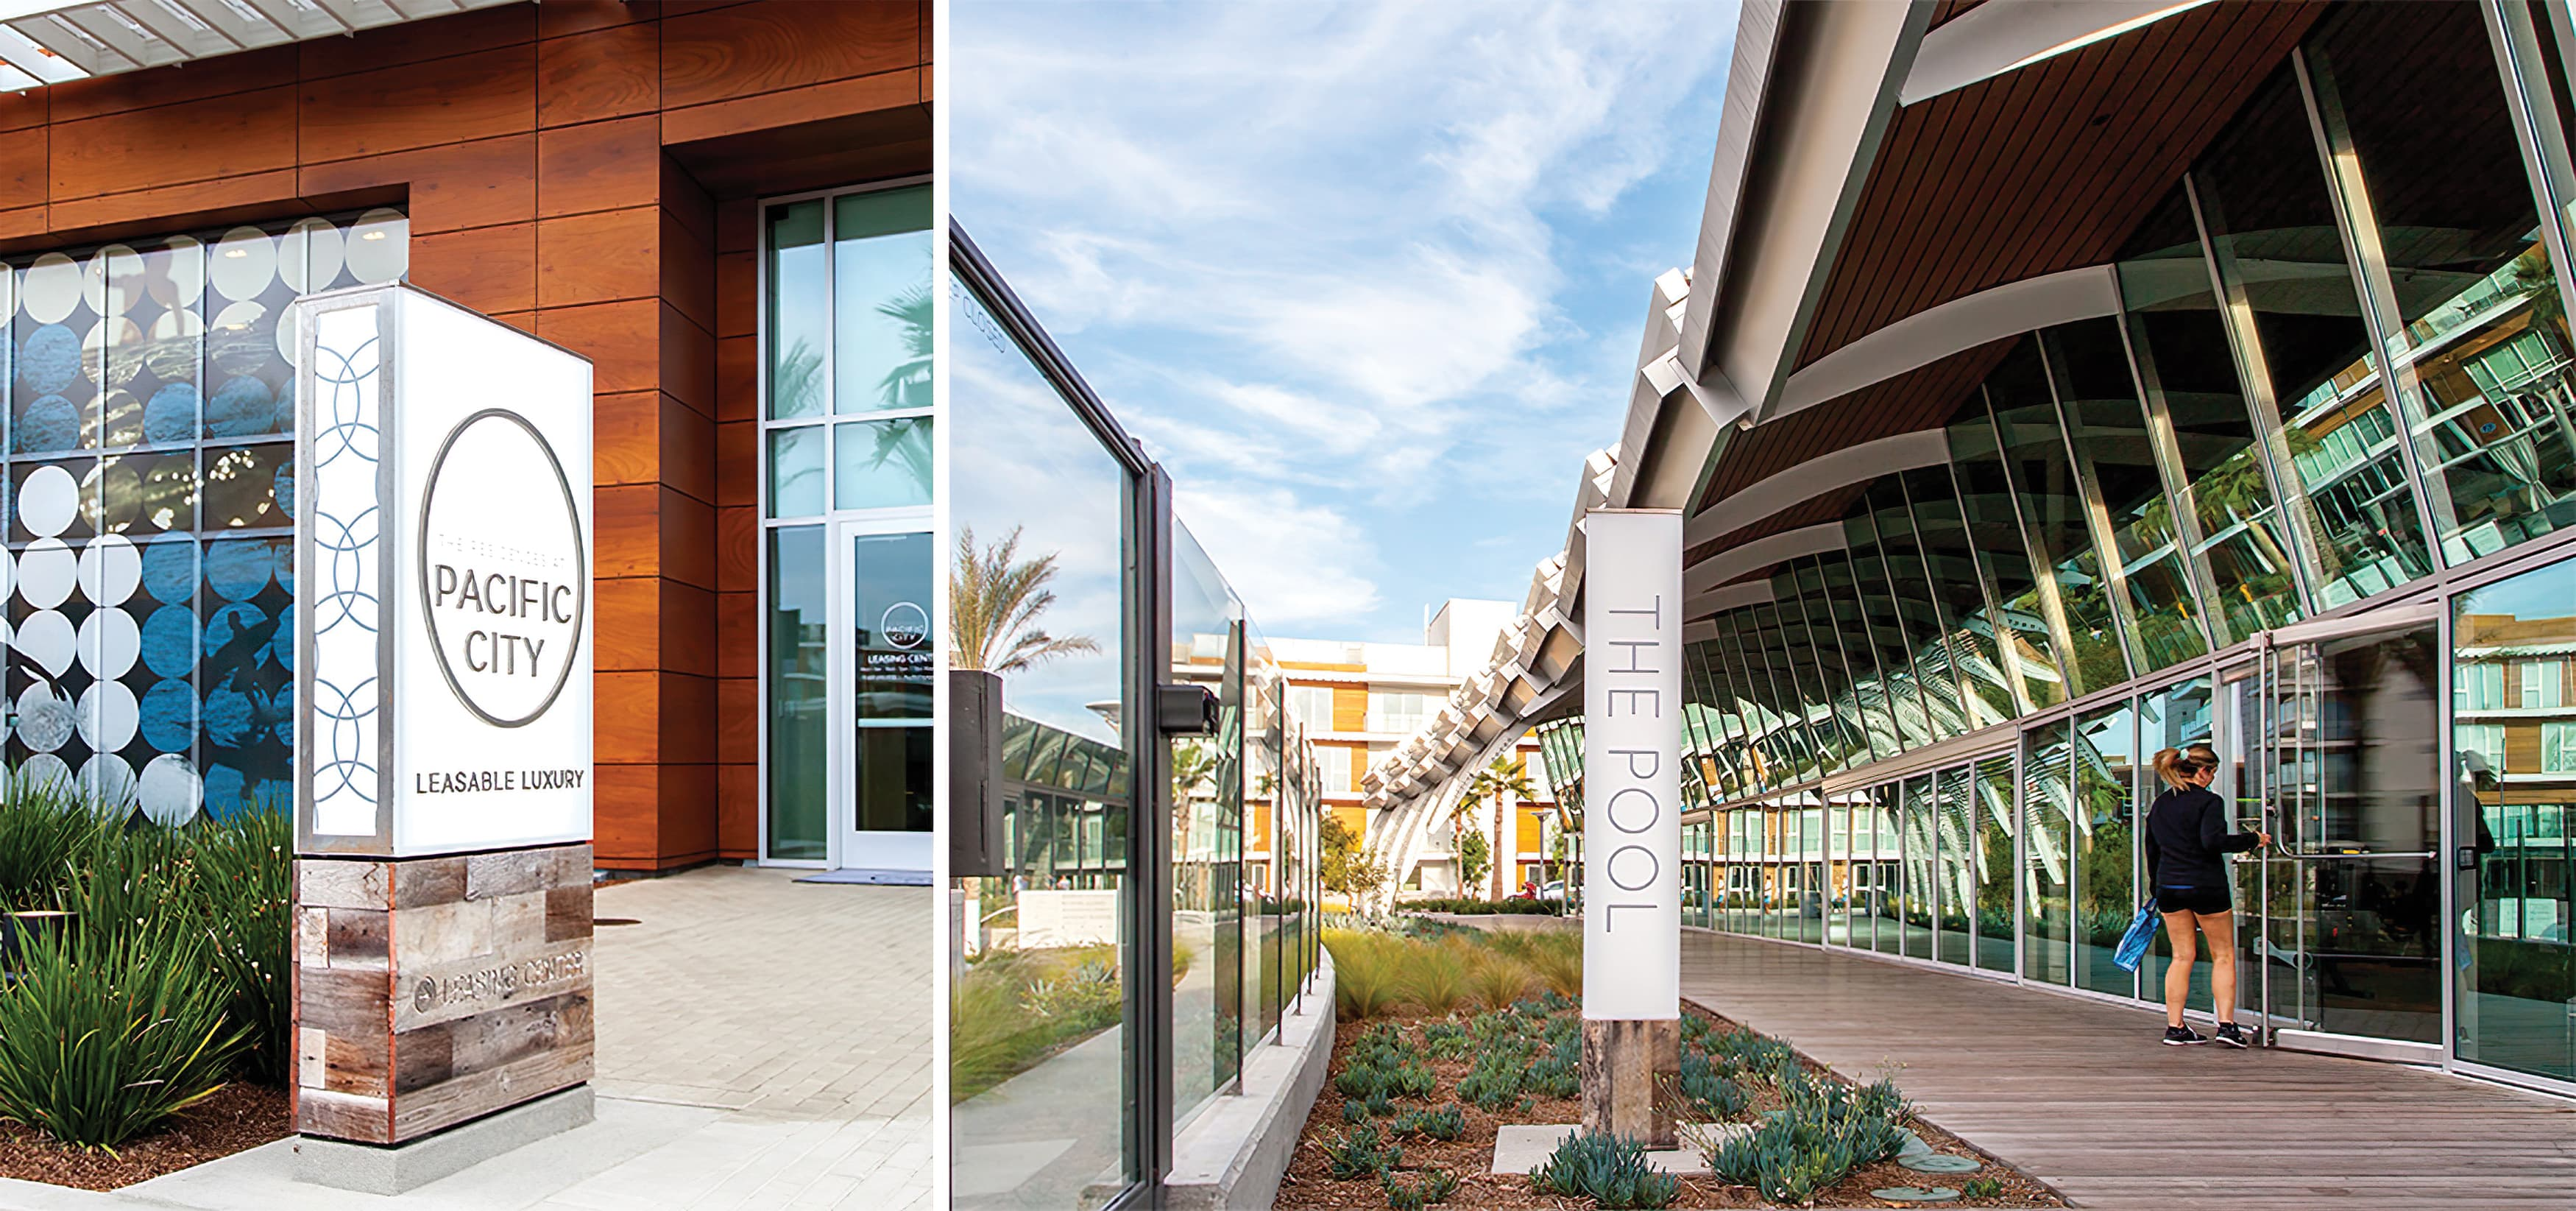 Pacific City, a luxury residential community in Huntington Beach, California. Project Identity and Amenity Identity Signage.